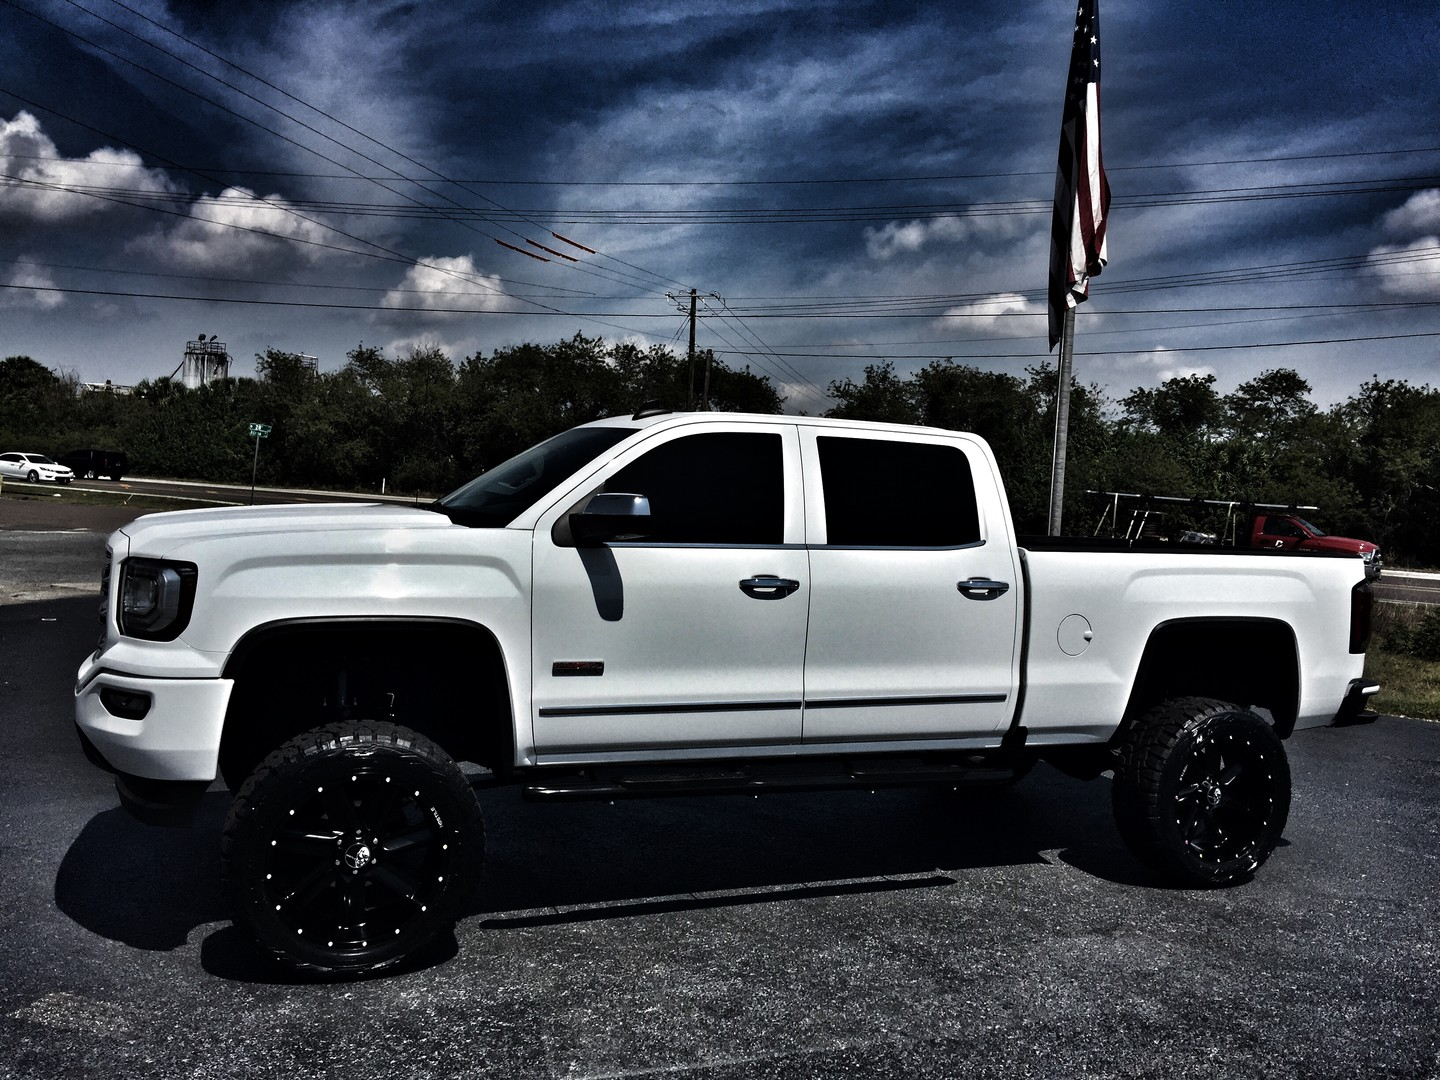 2016 gmc sierra 1500 custom lifted all terrain crewcab 4x4 v8 florida bayshore automotive. Black Bedroom Furniture Sets. Home Design Ideas